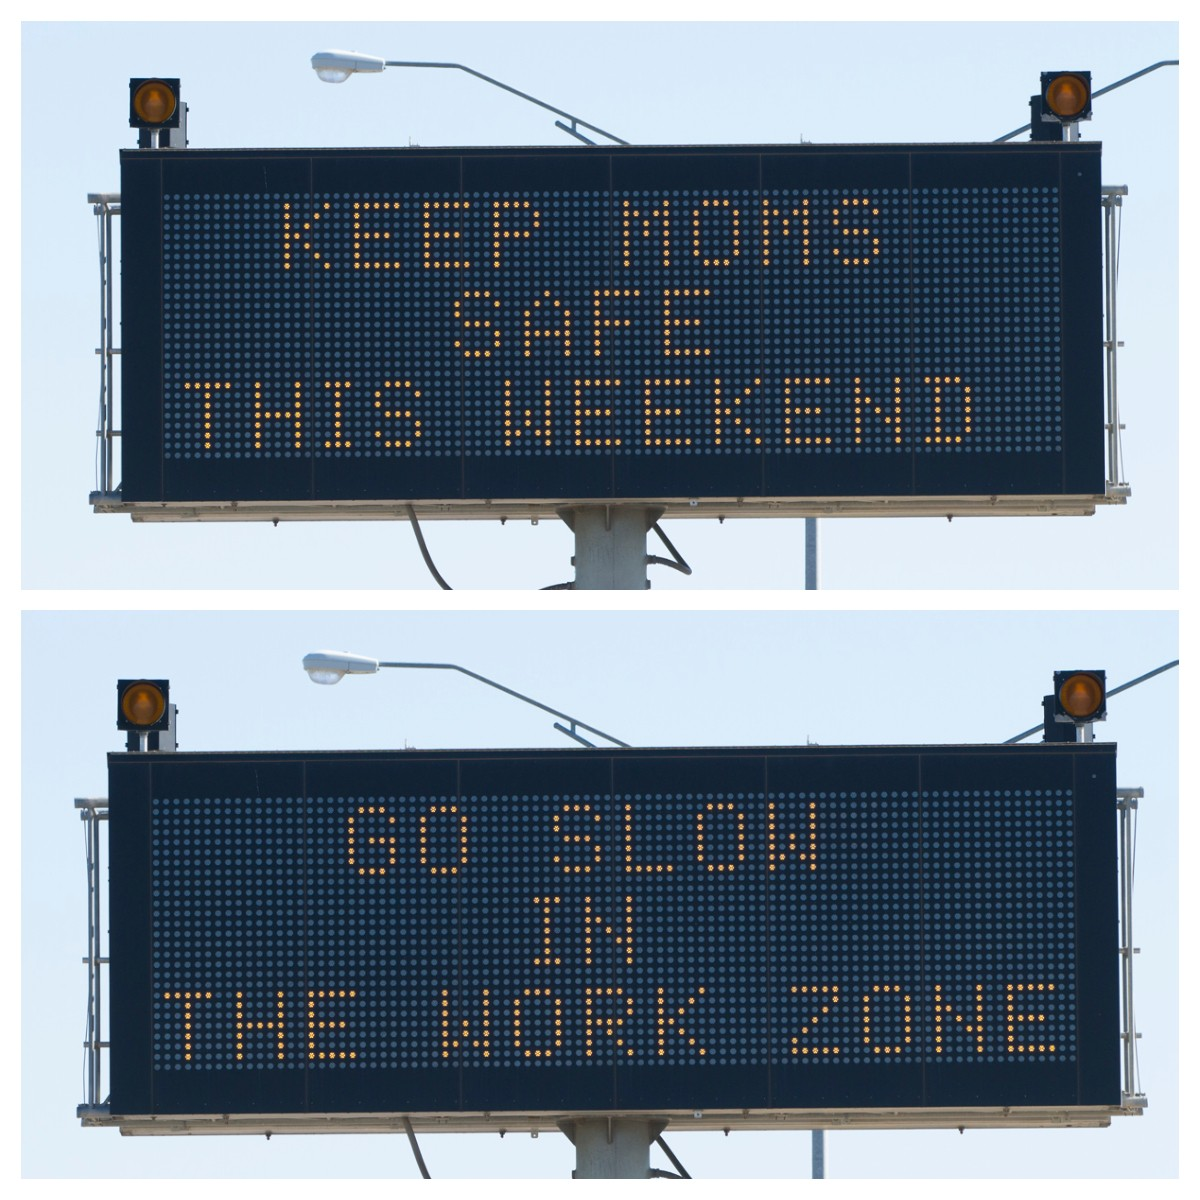 /content/dam/ok/en/odot/images/message-signs/05.04.16.jpg